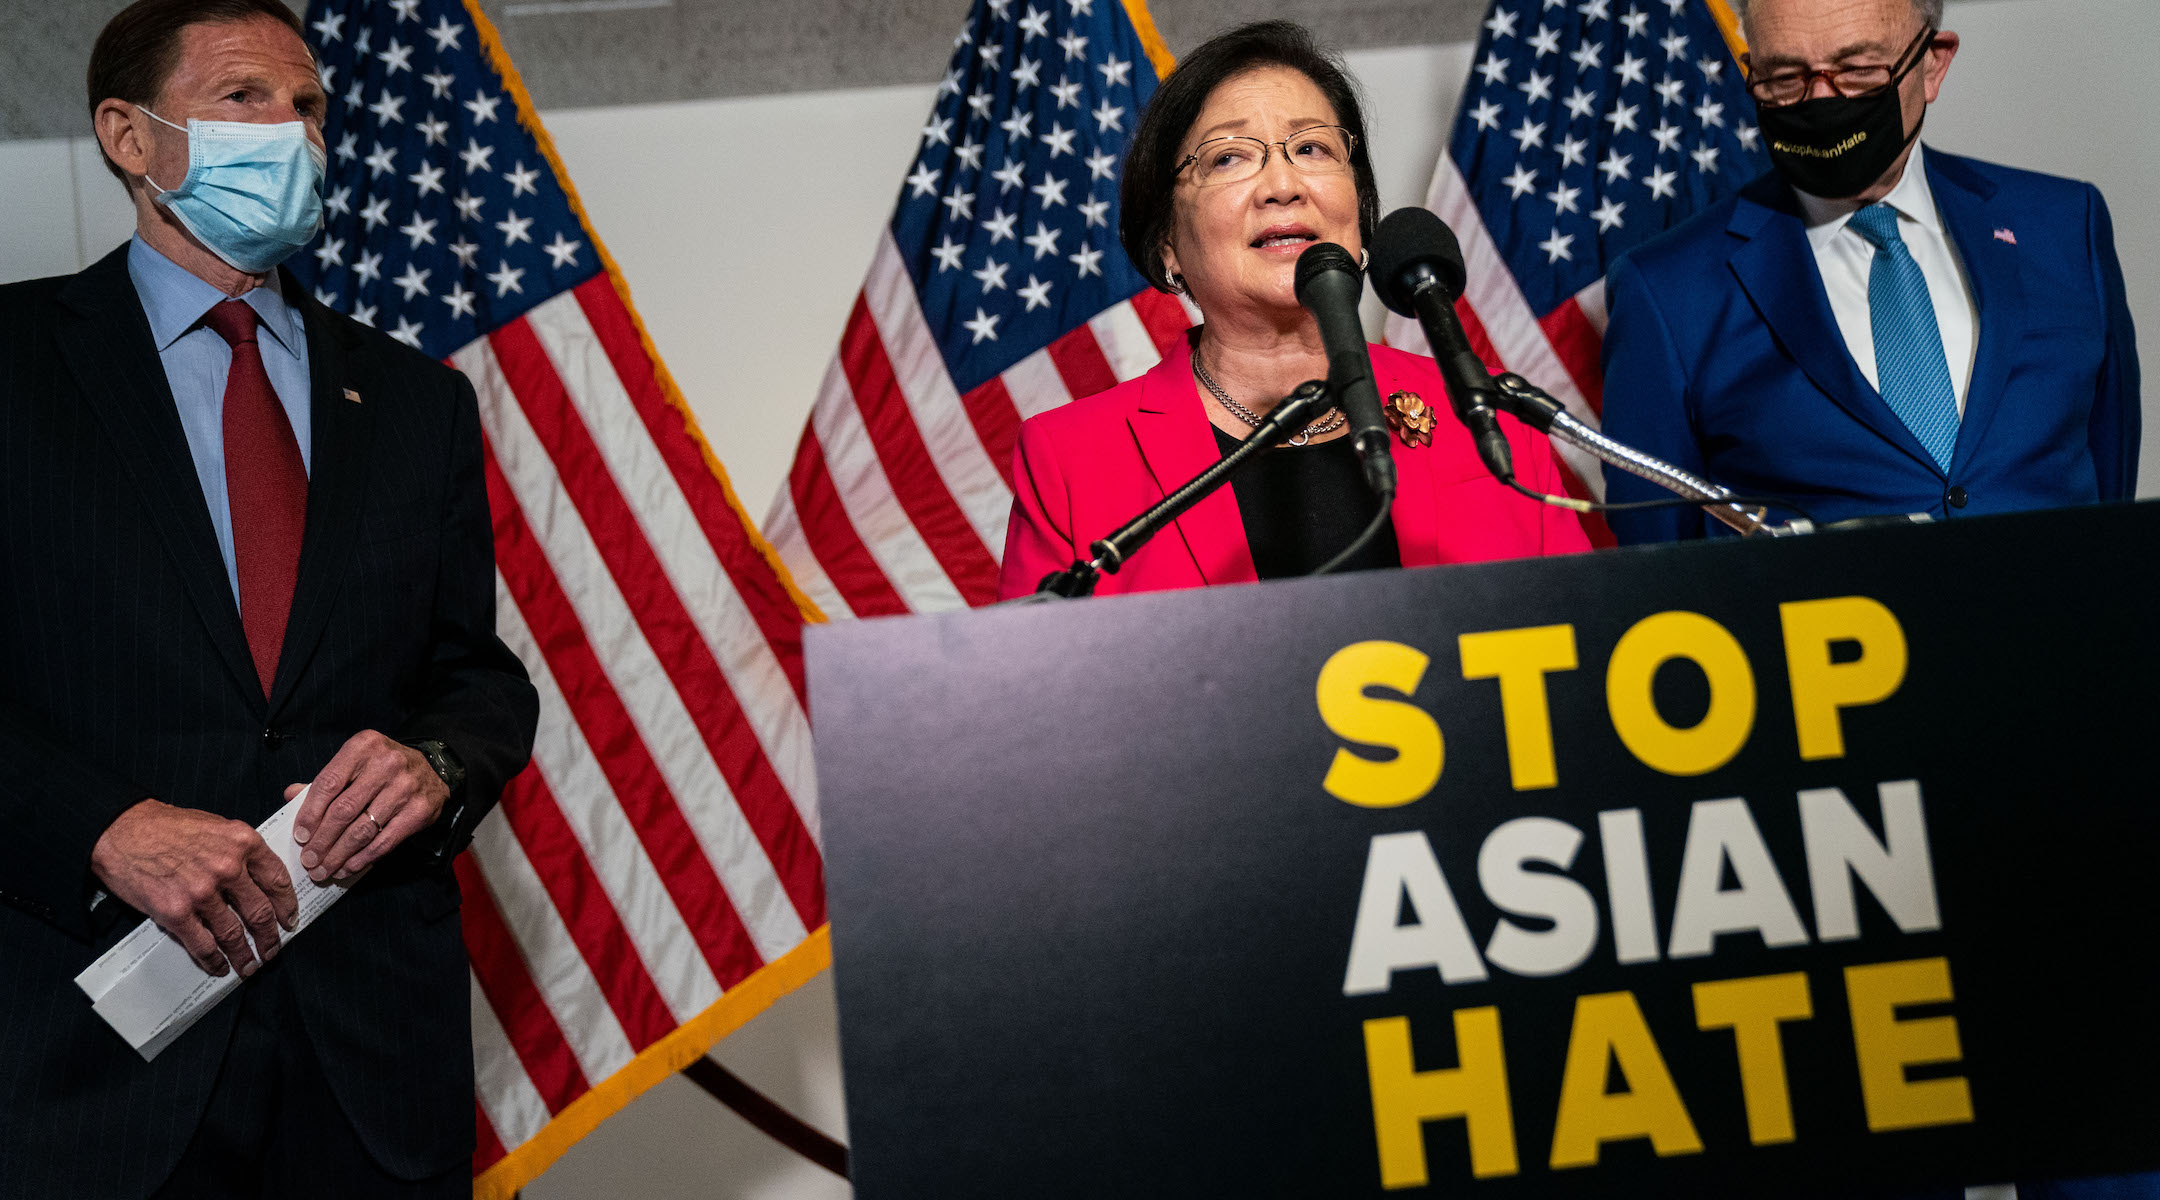 Sen. Mazie Hirono, who introduced the COVID-19 Hate Crimes Act, speaks in Washington, D.C. on April 20, 2021. (Kent Nishimura / Los Angeles Times via Getty Images)